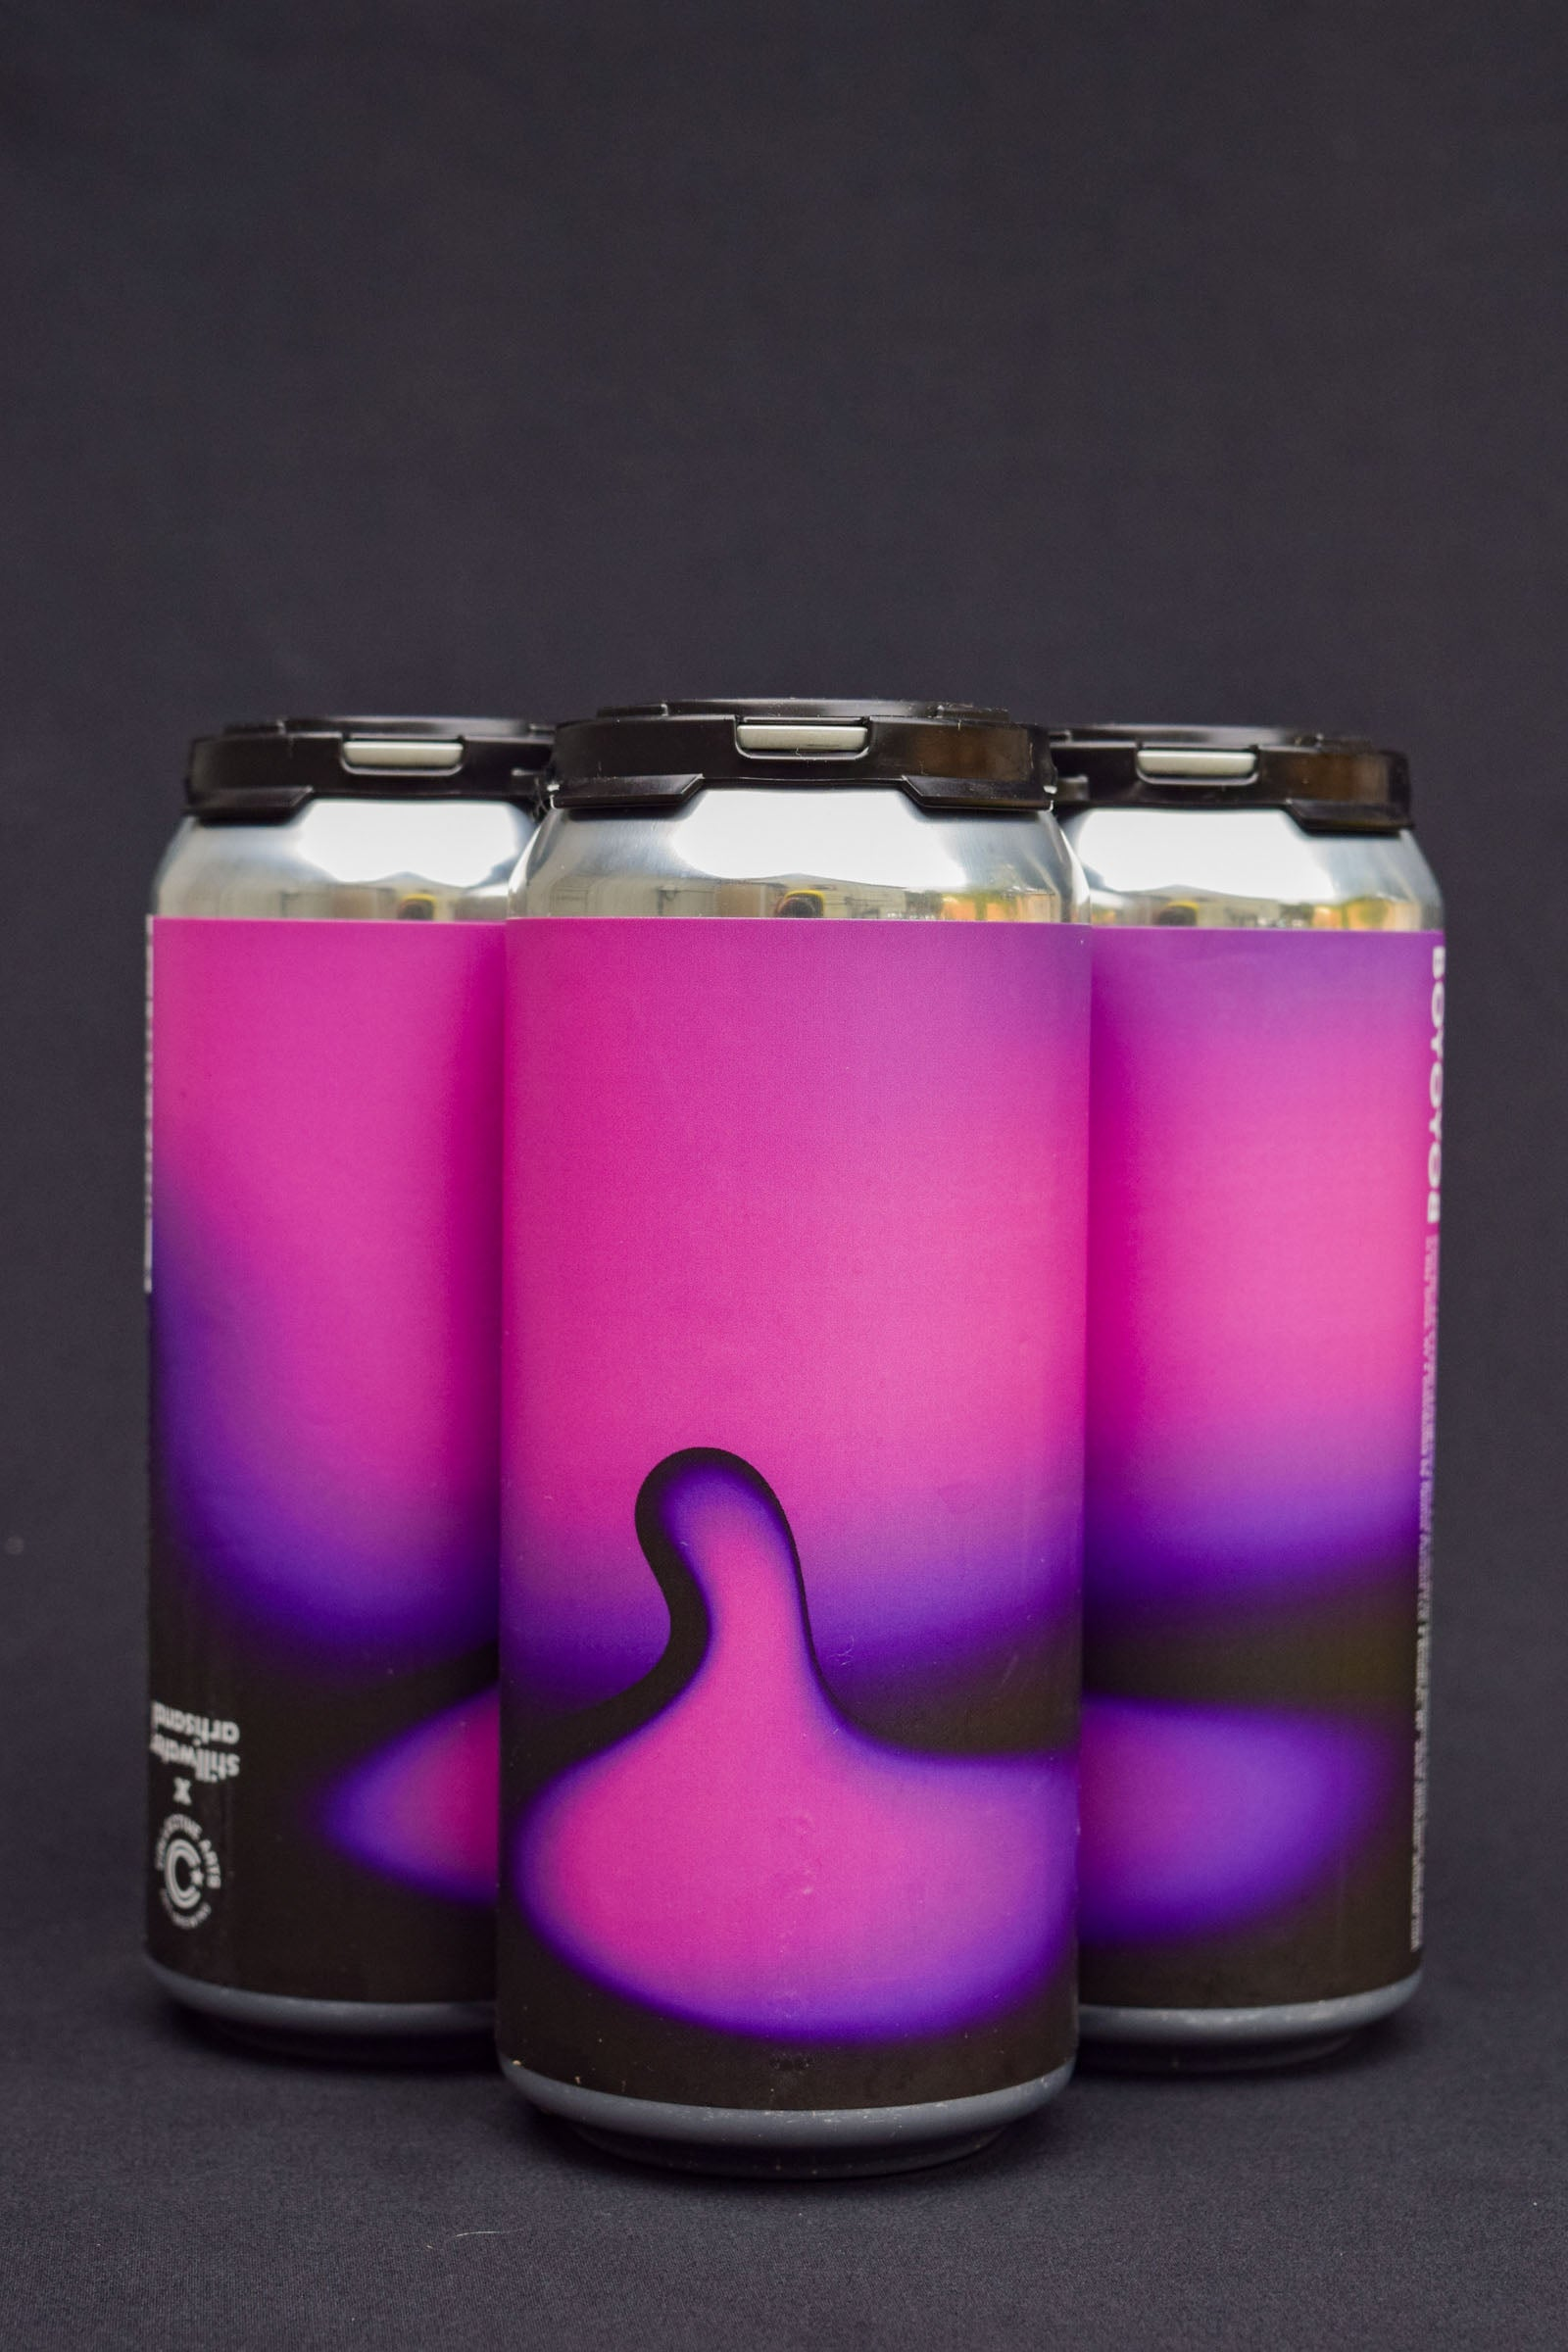 Buy Stillwater Artisanal BOYOBOY Breakfast Sour Online